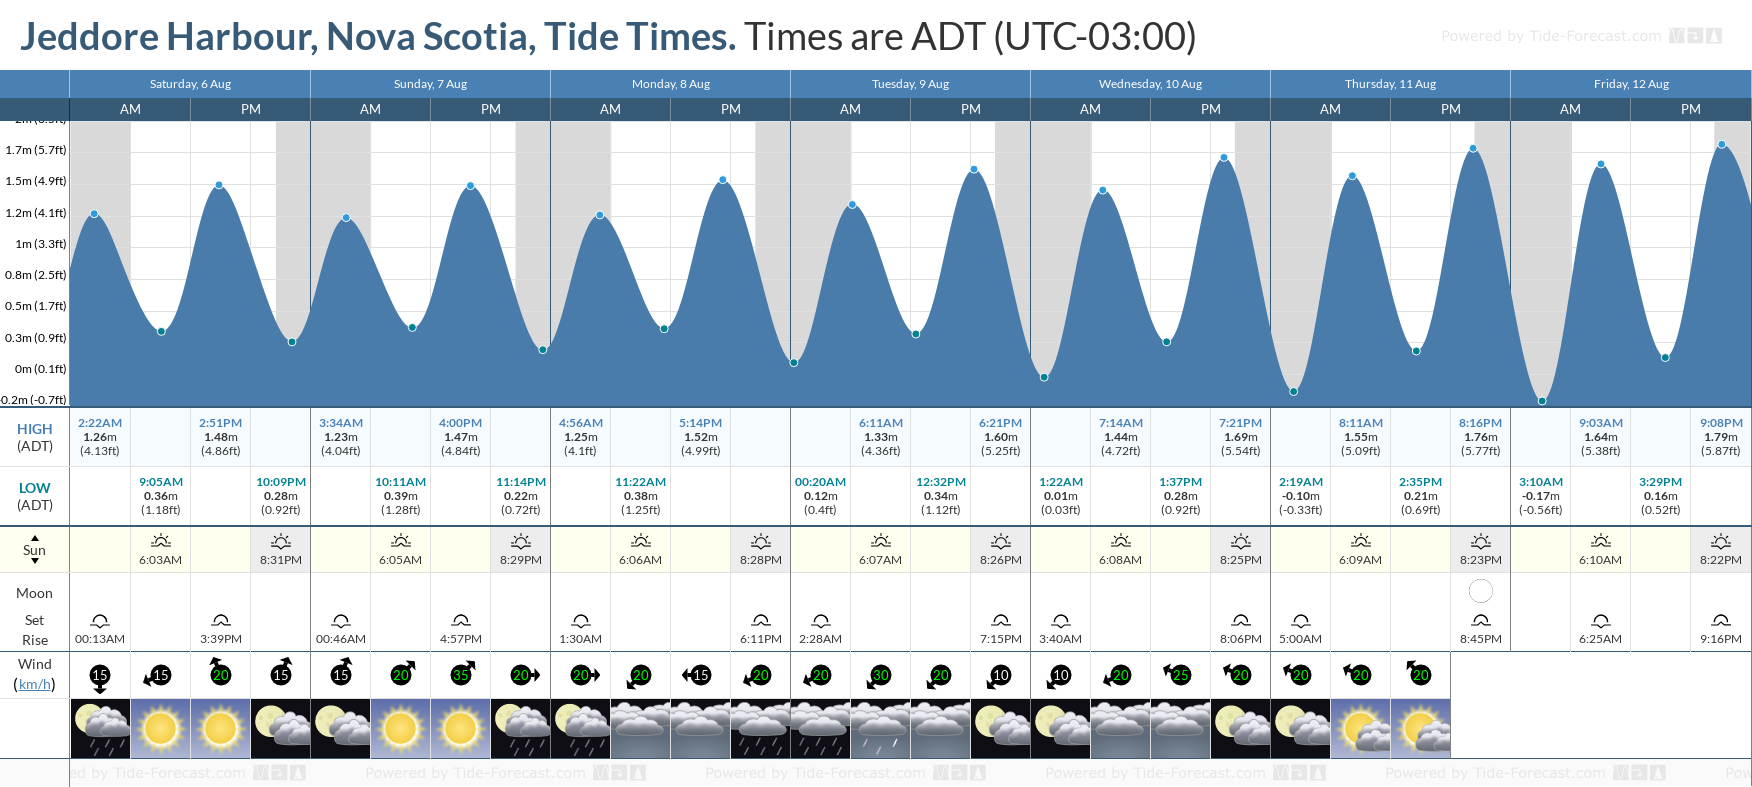 Jeddore Harbour, Nova Scotia Tide Chart including high and low tide tide times for the next 7 days